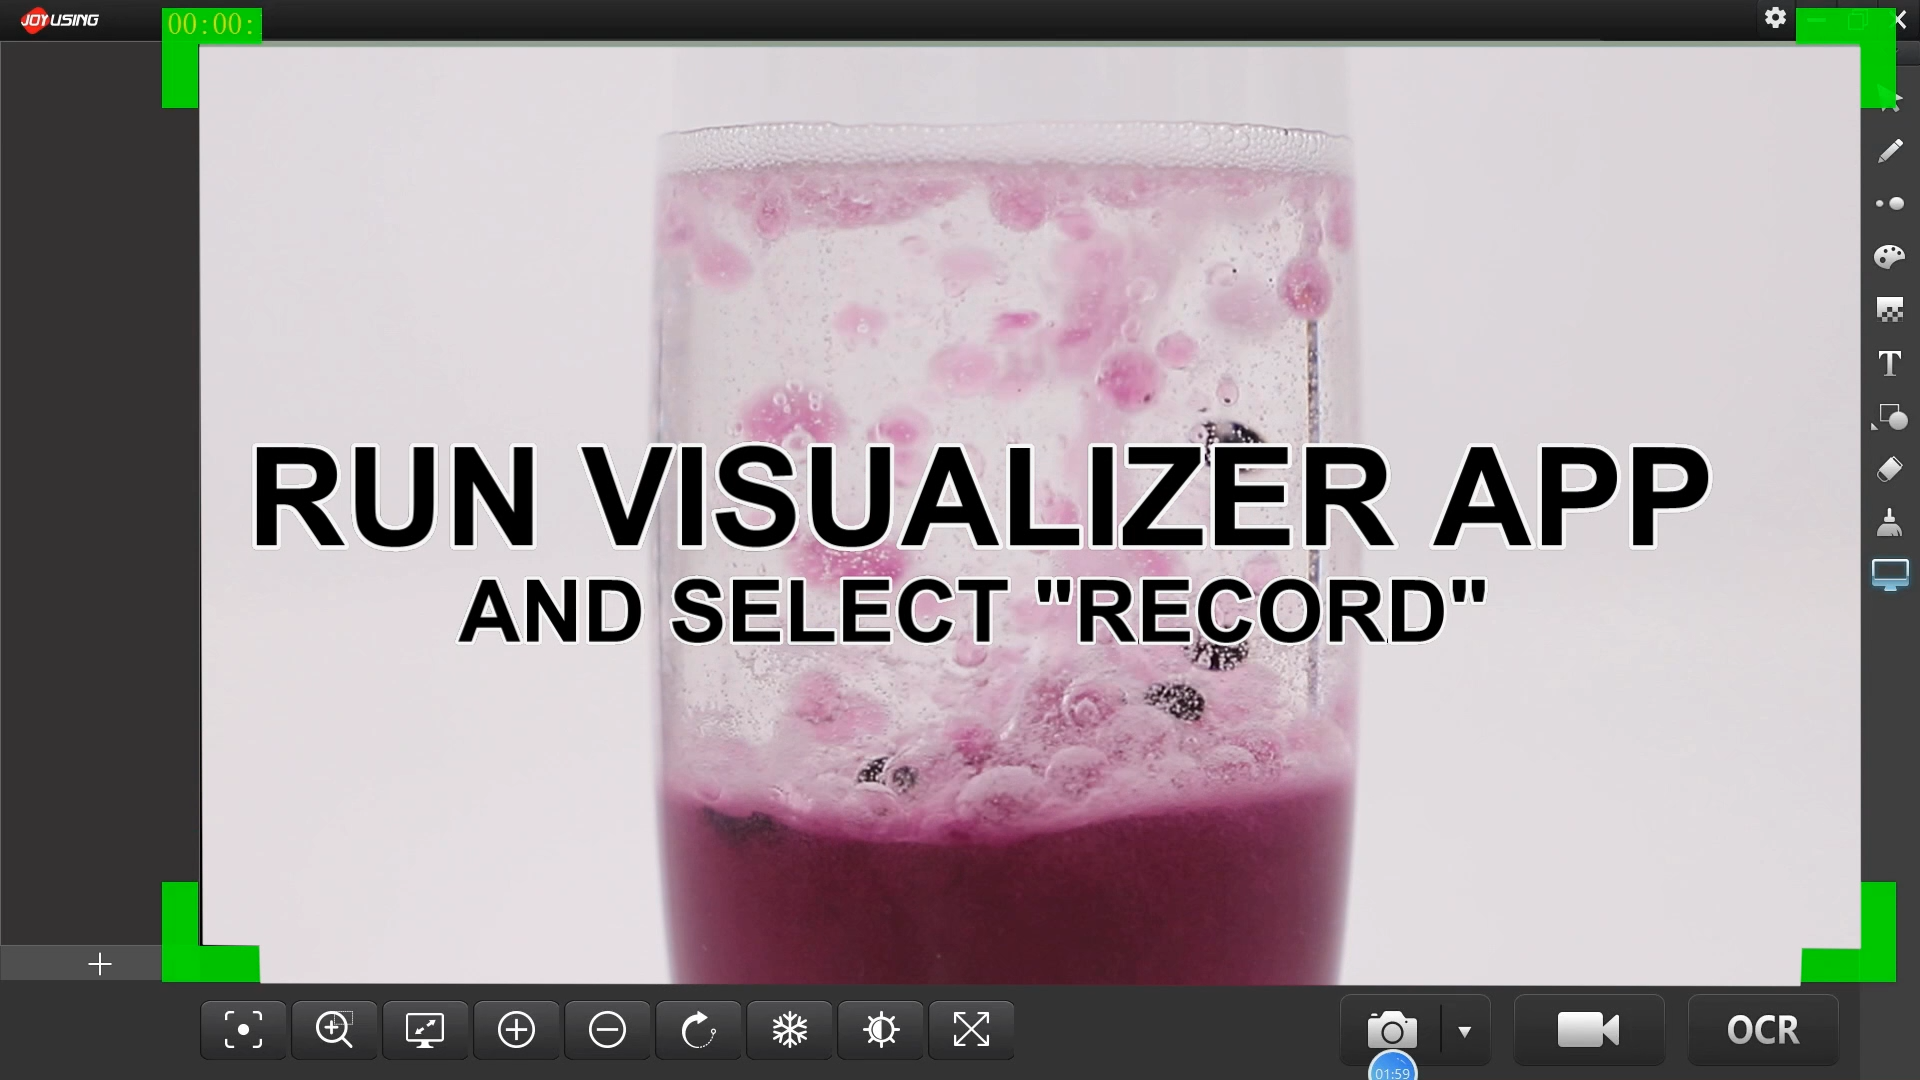 Run Visualizer APP